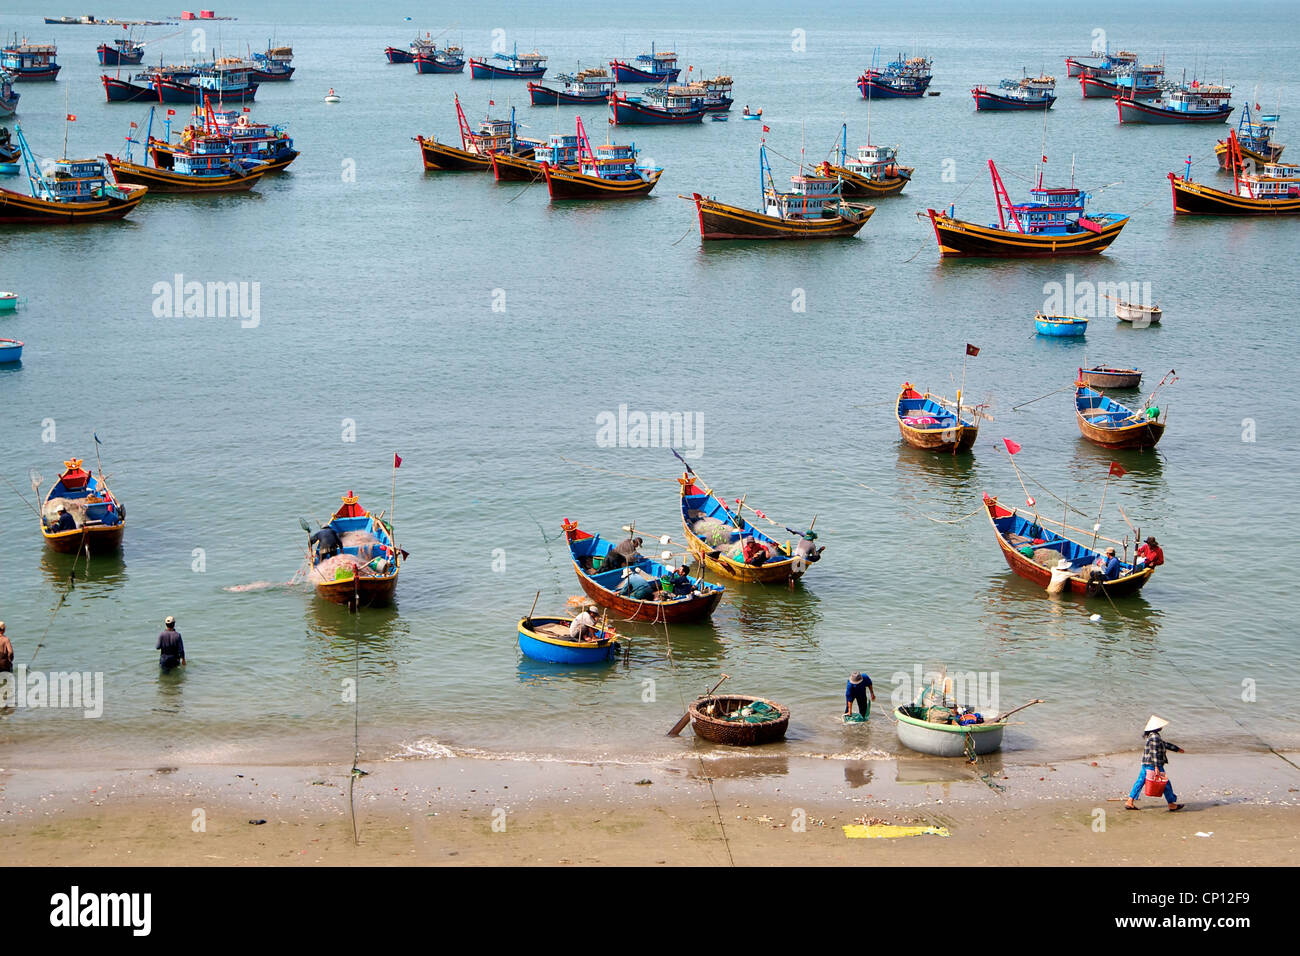 Fishing boats and thriving activity in the bay in Mui Ne, Vietnam. - Stock Image